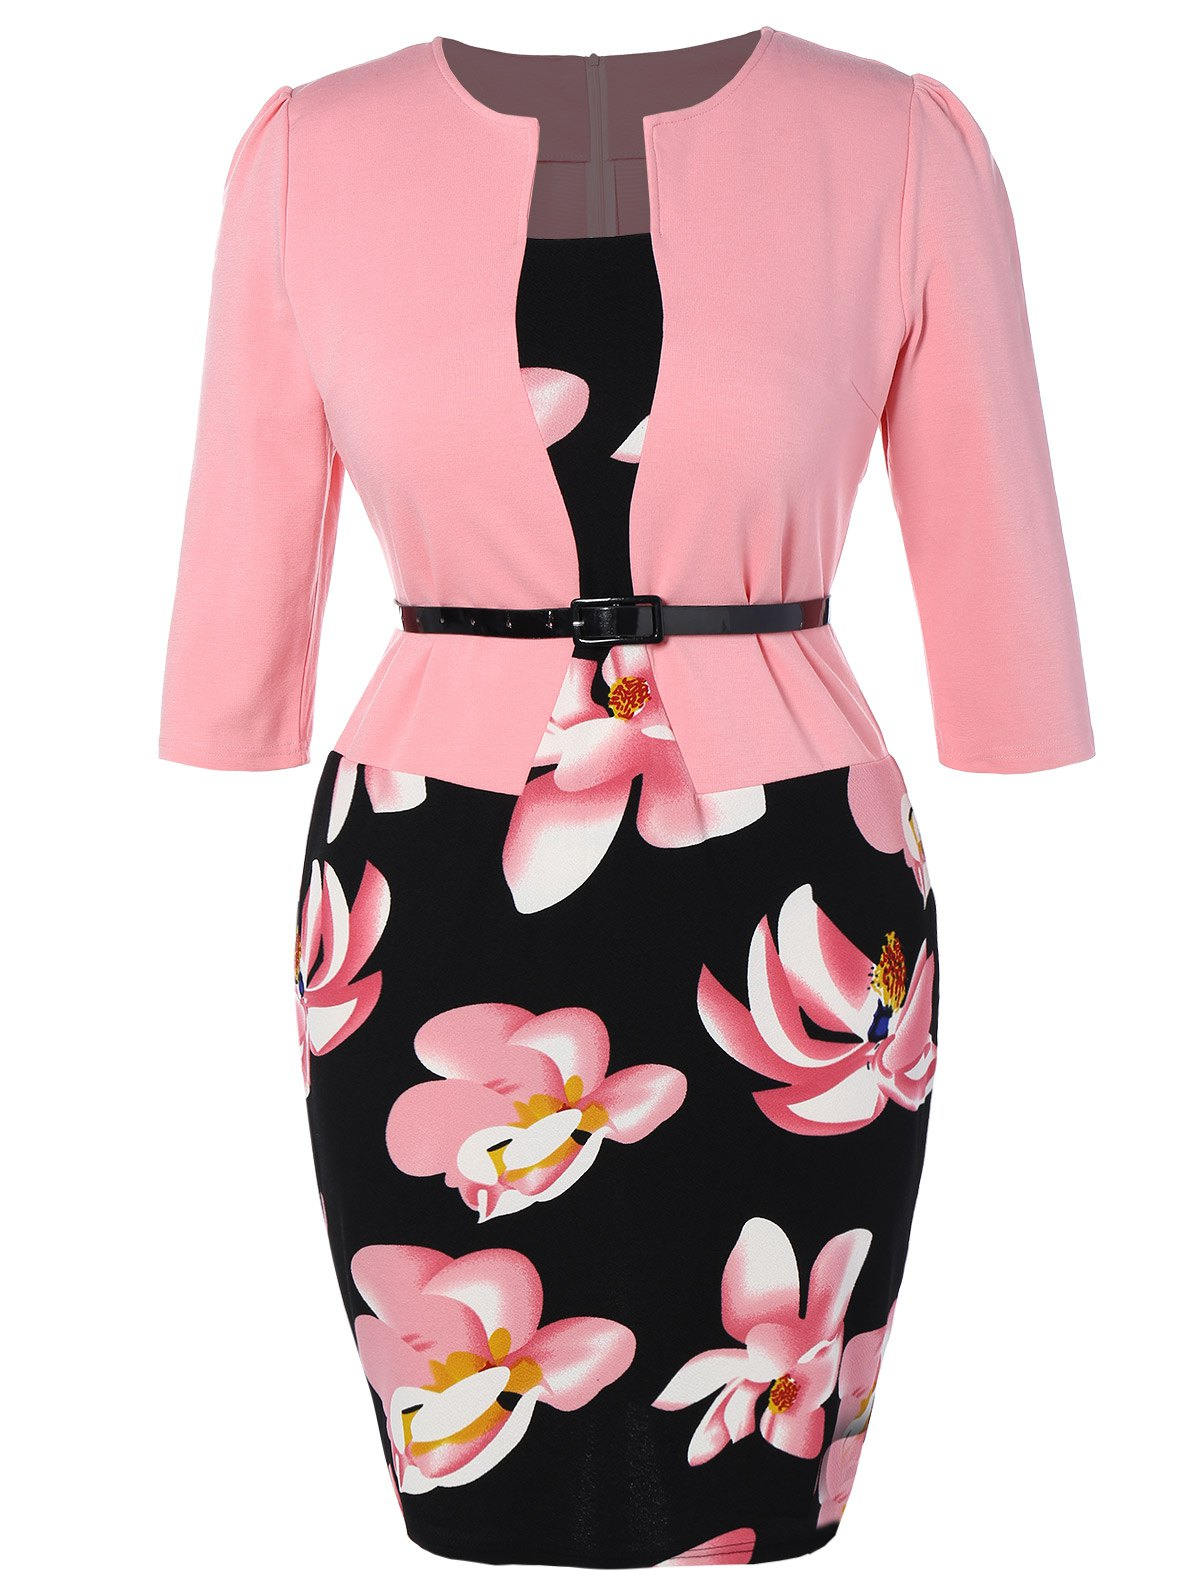 Plus Size Mid Length Pencil Peplum DressWOMEN<br><br>Size: 4XL; Color: PINK; Style: Work; Material: Cotton Blend,Polyester; Silhouette: Sheath; Dresses Length: Mid-Calf; Neckline: Square Collar; Sleeve Length: 3/4 Length Sleeves; Pattern Type: Print; With Belt: Yes; Season: Fall,Spring; Weight: 0.403kg; Package Contents: 1 x Dress  1 x Belt;